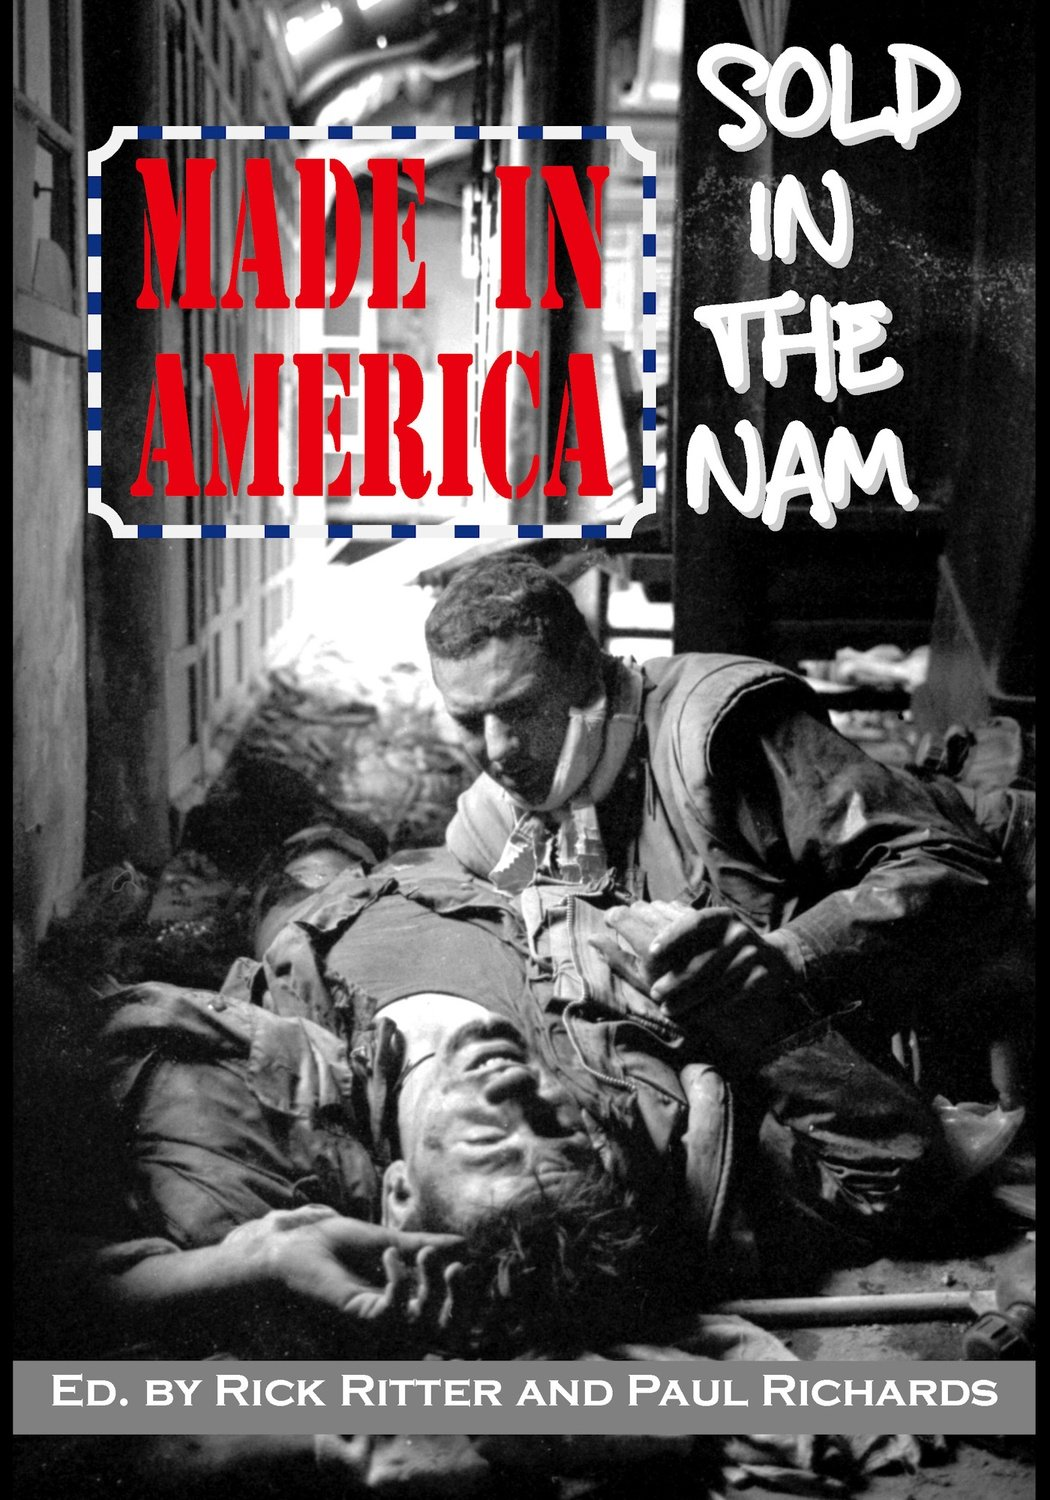 Made in America, Sold in the Nam: A Continuing Legacy of Pain